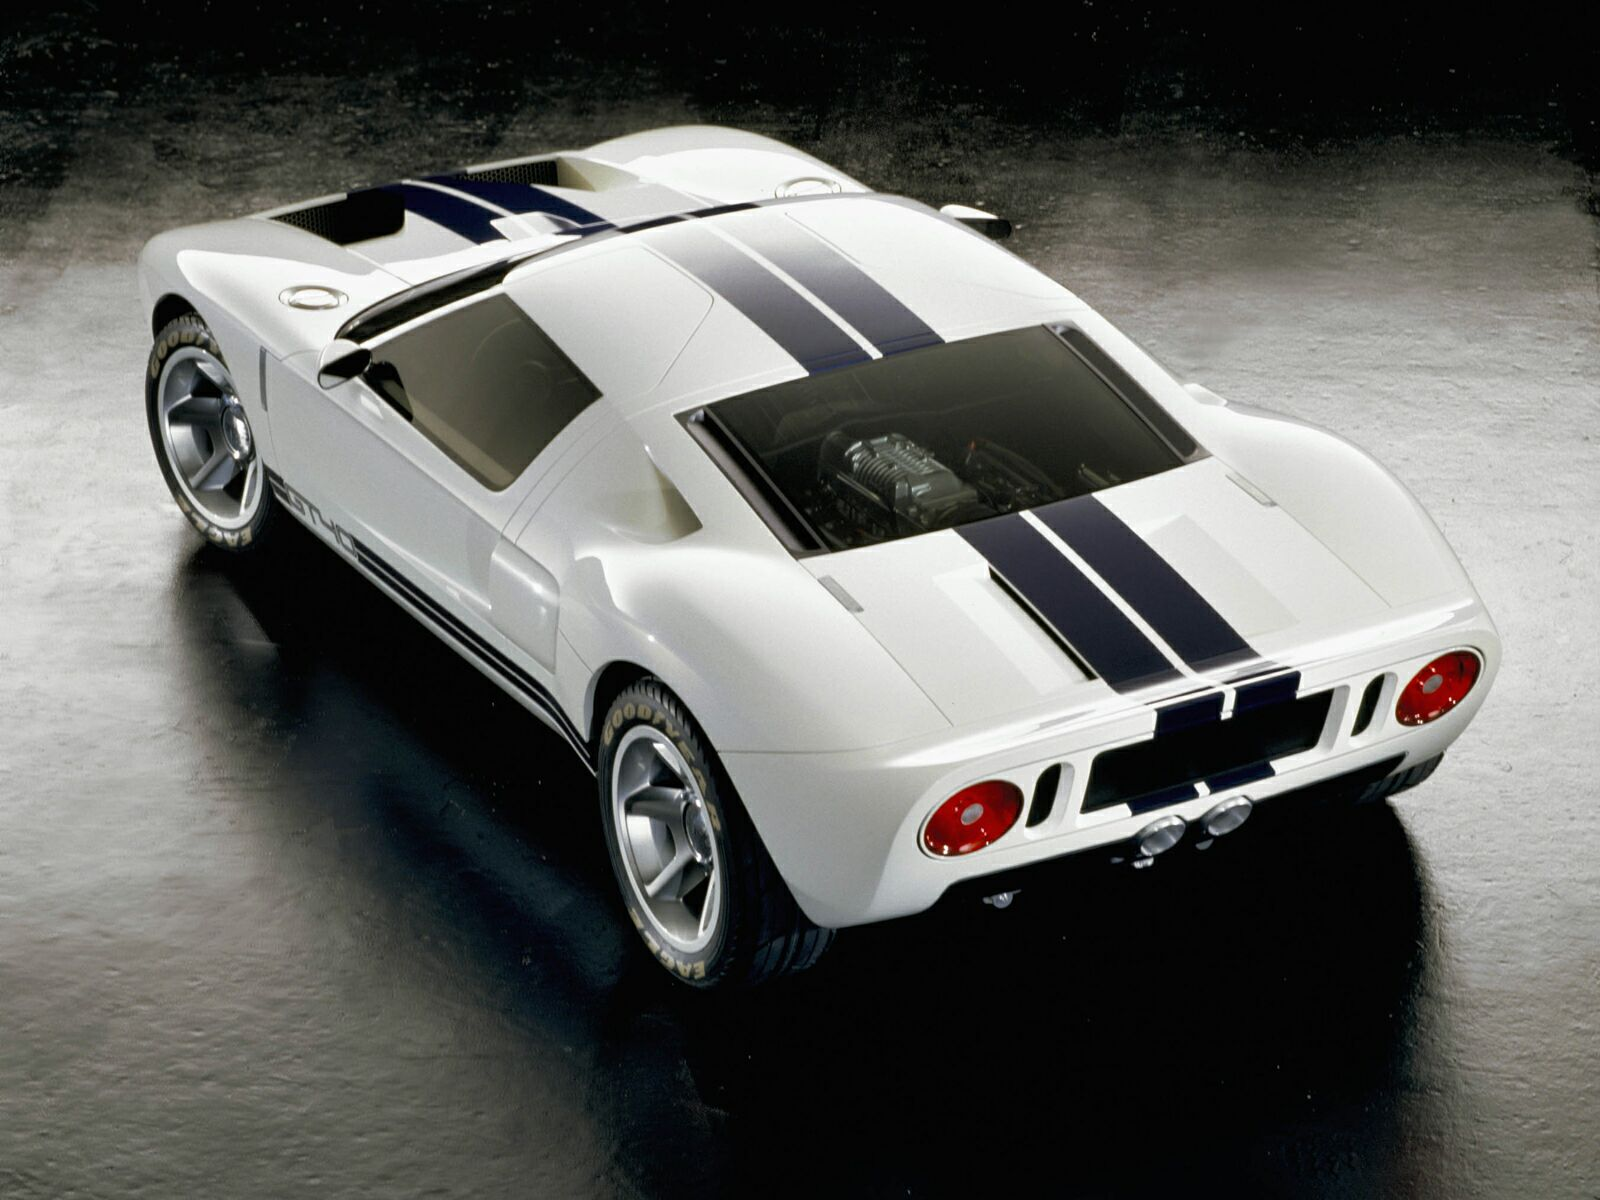 Ford Gt40 Wallpaper 5454 Hd Wallpapers in Cars   Imagescicom 1600x1200